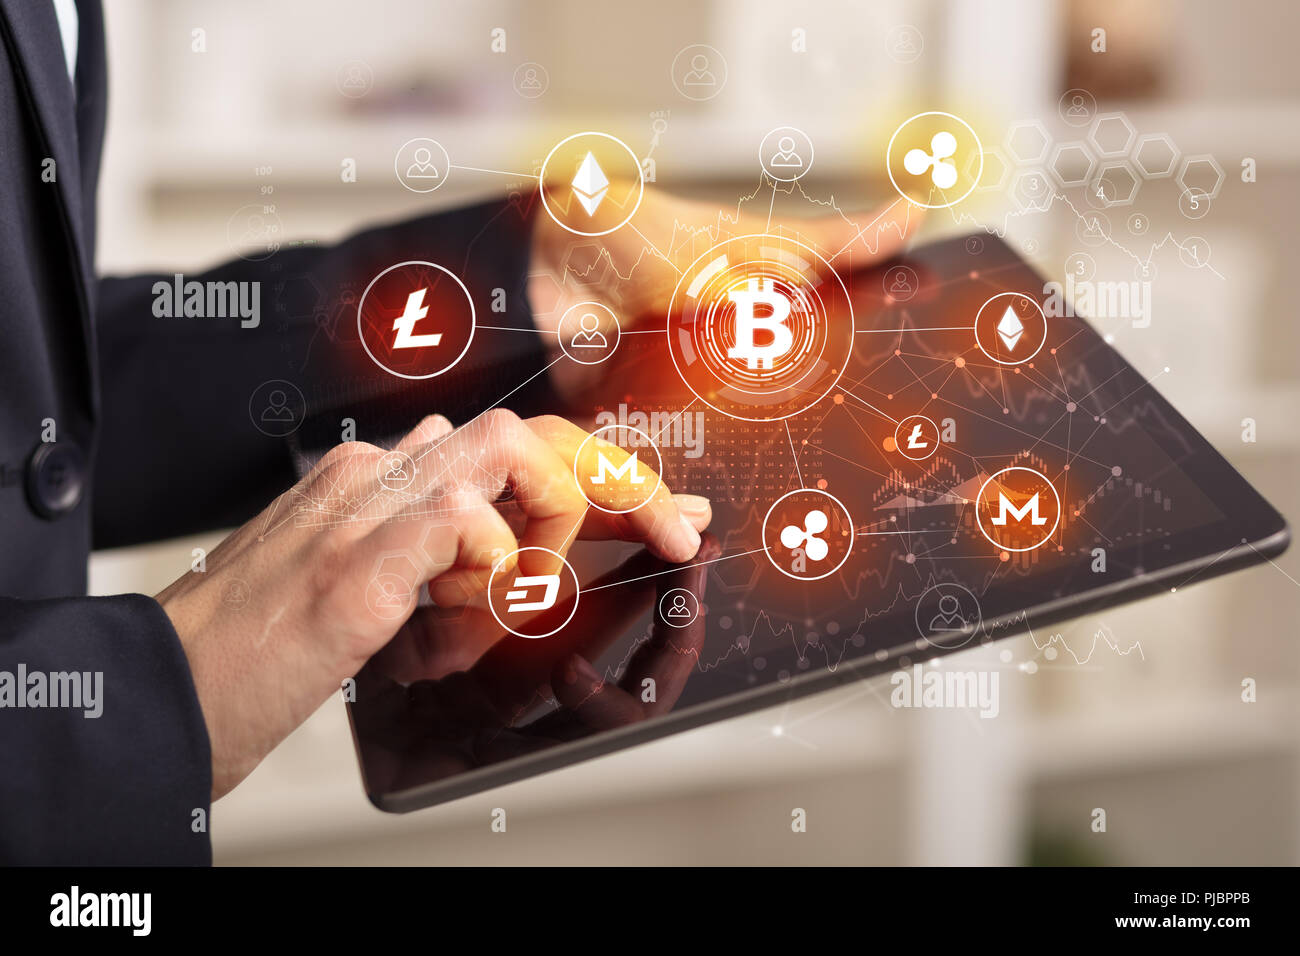 Business woman using tablet with cryptocurrency bitcoin link network concept  - Stock Image